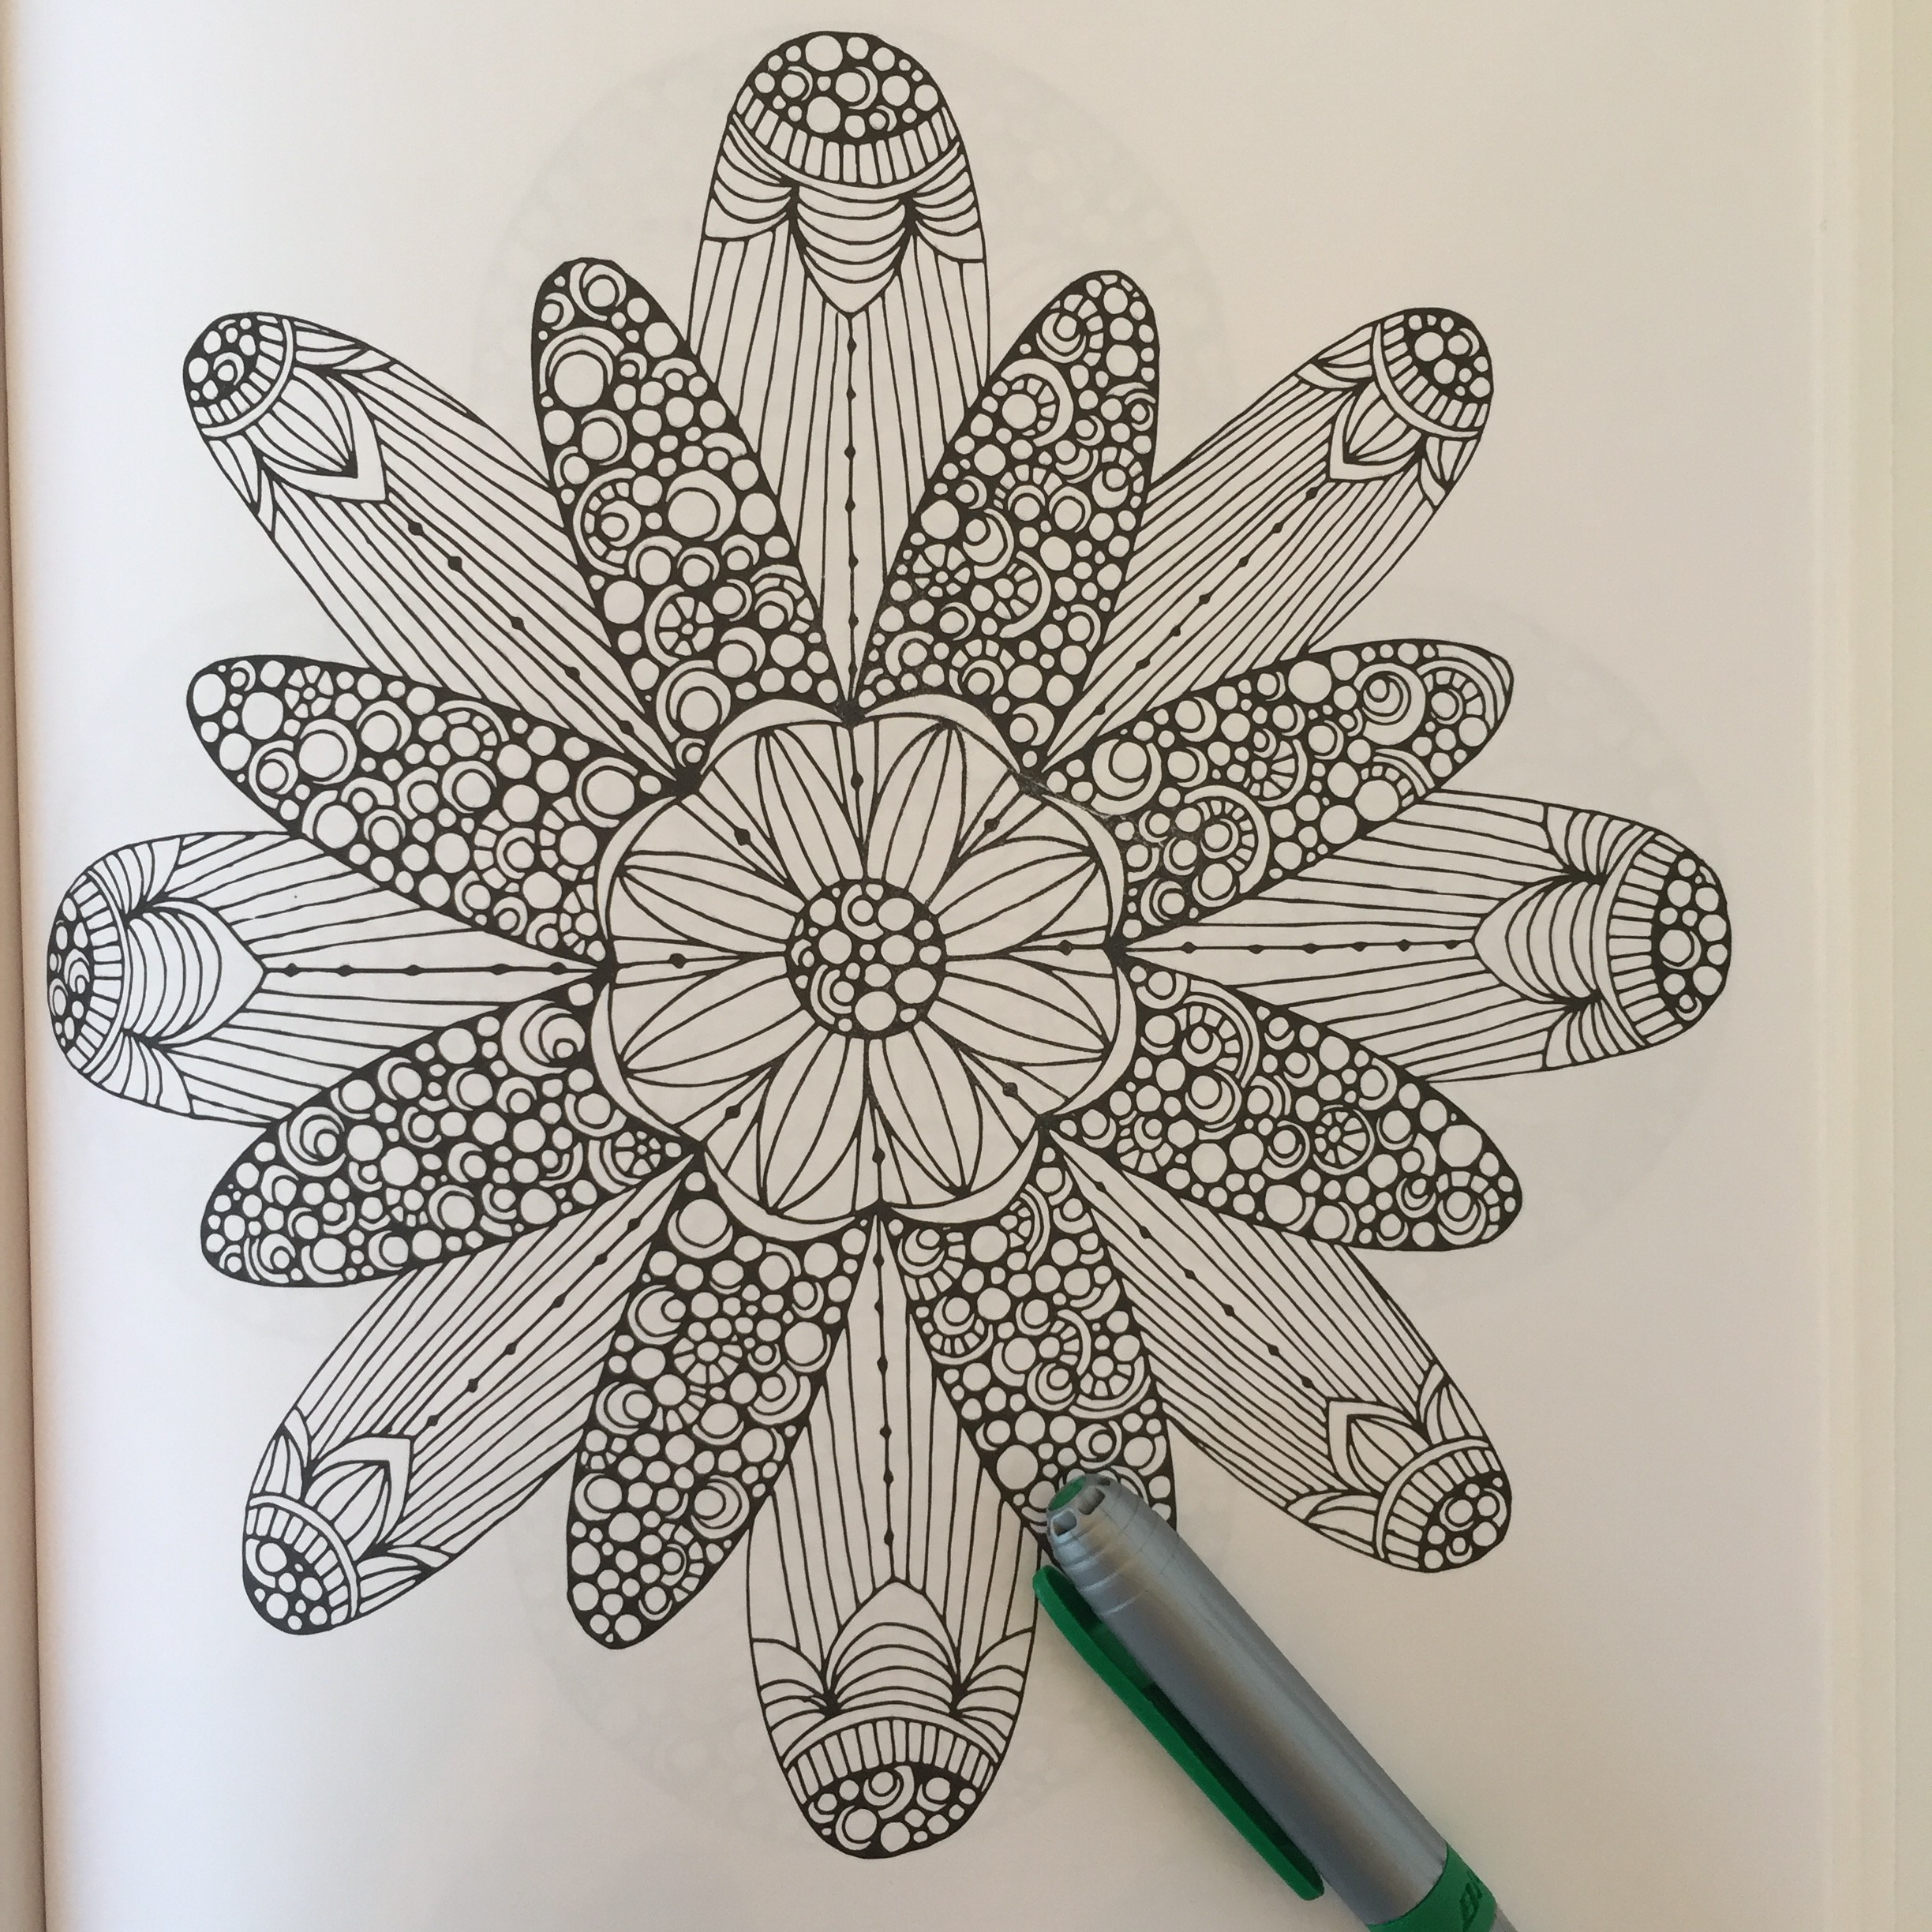 Creative Coloring Mandalas - 2 Old 2 Color